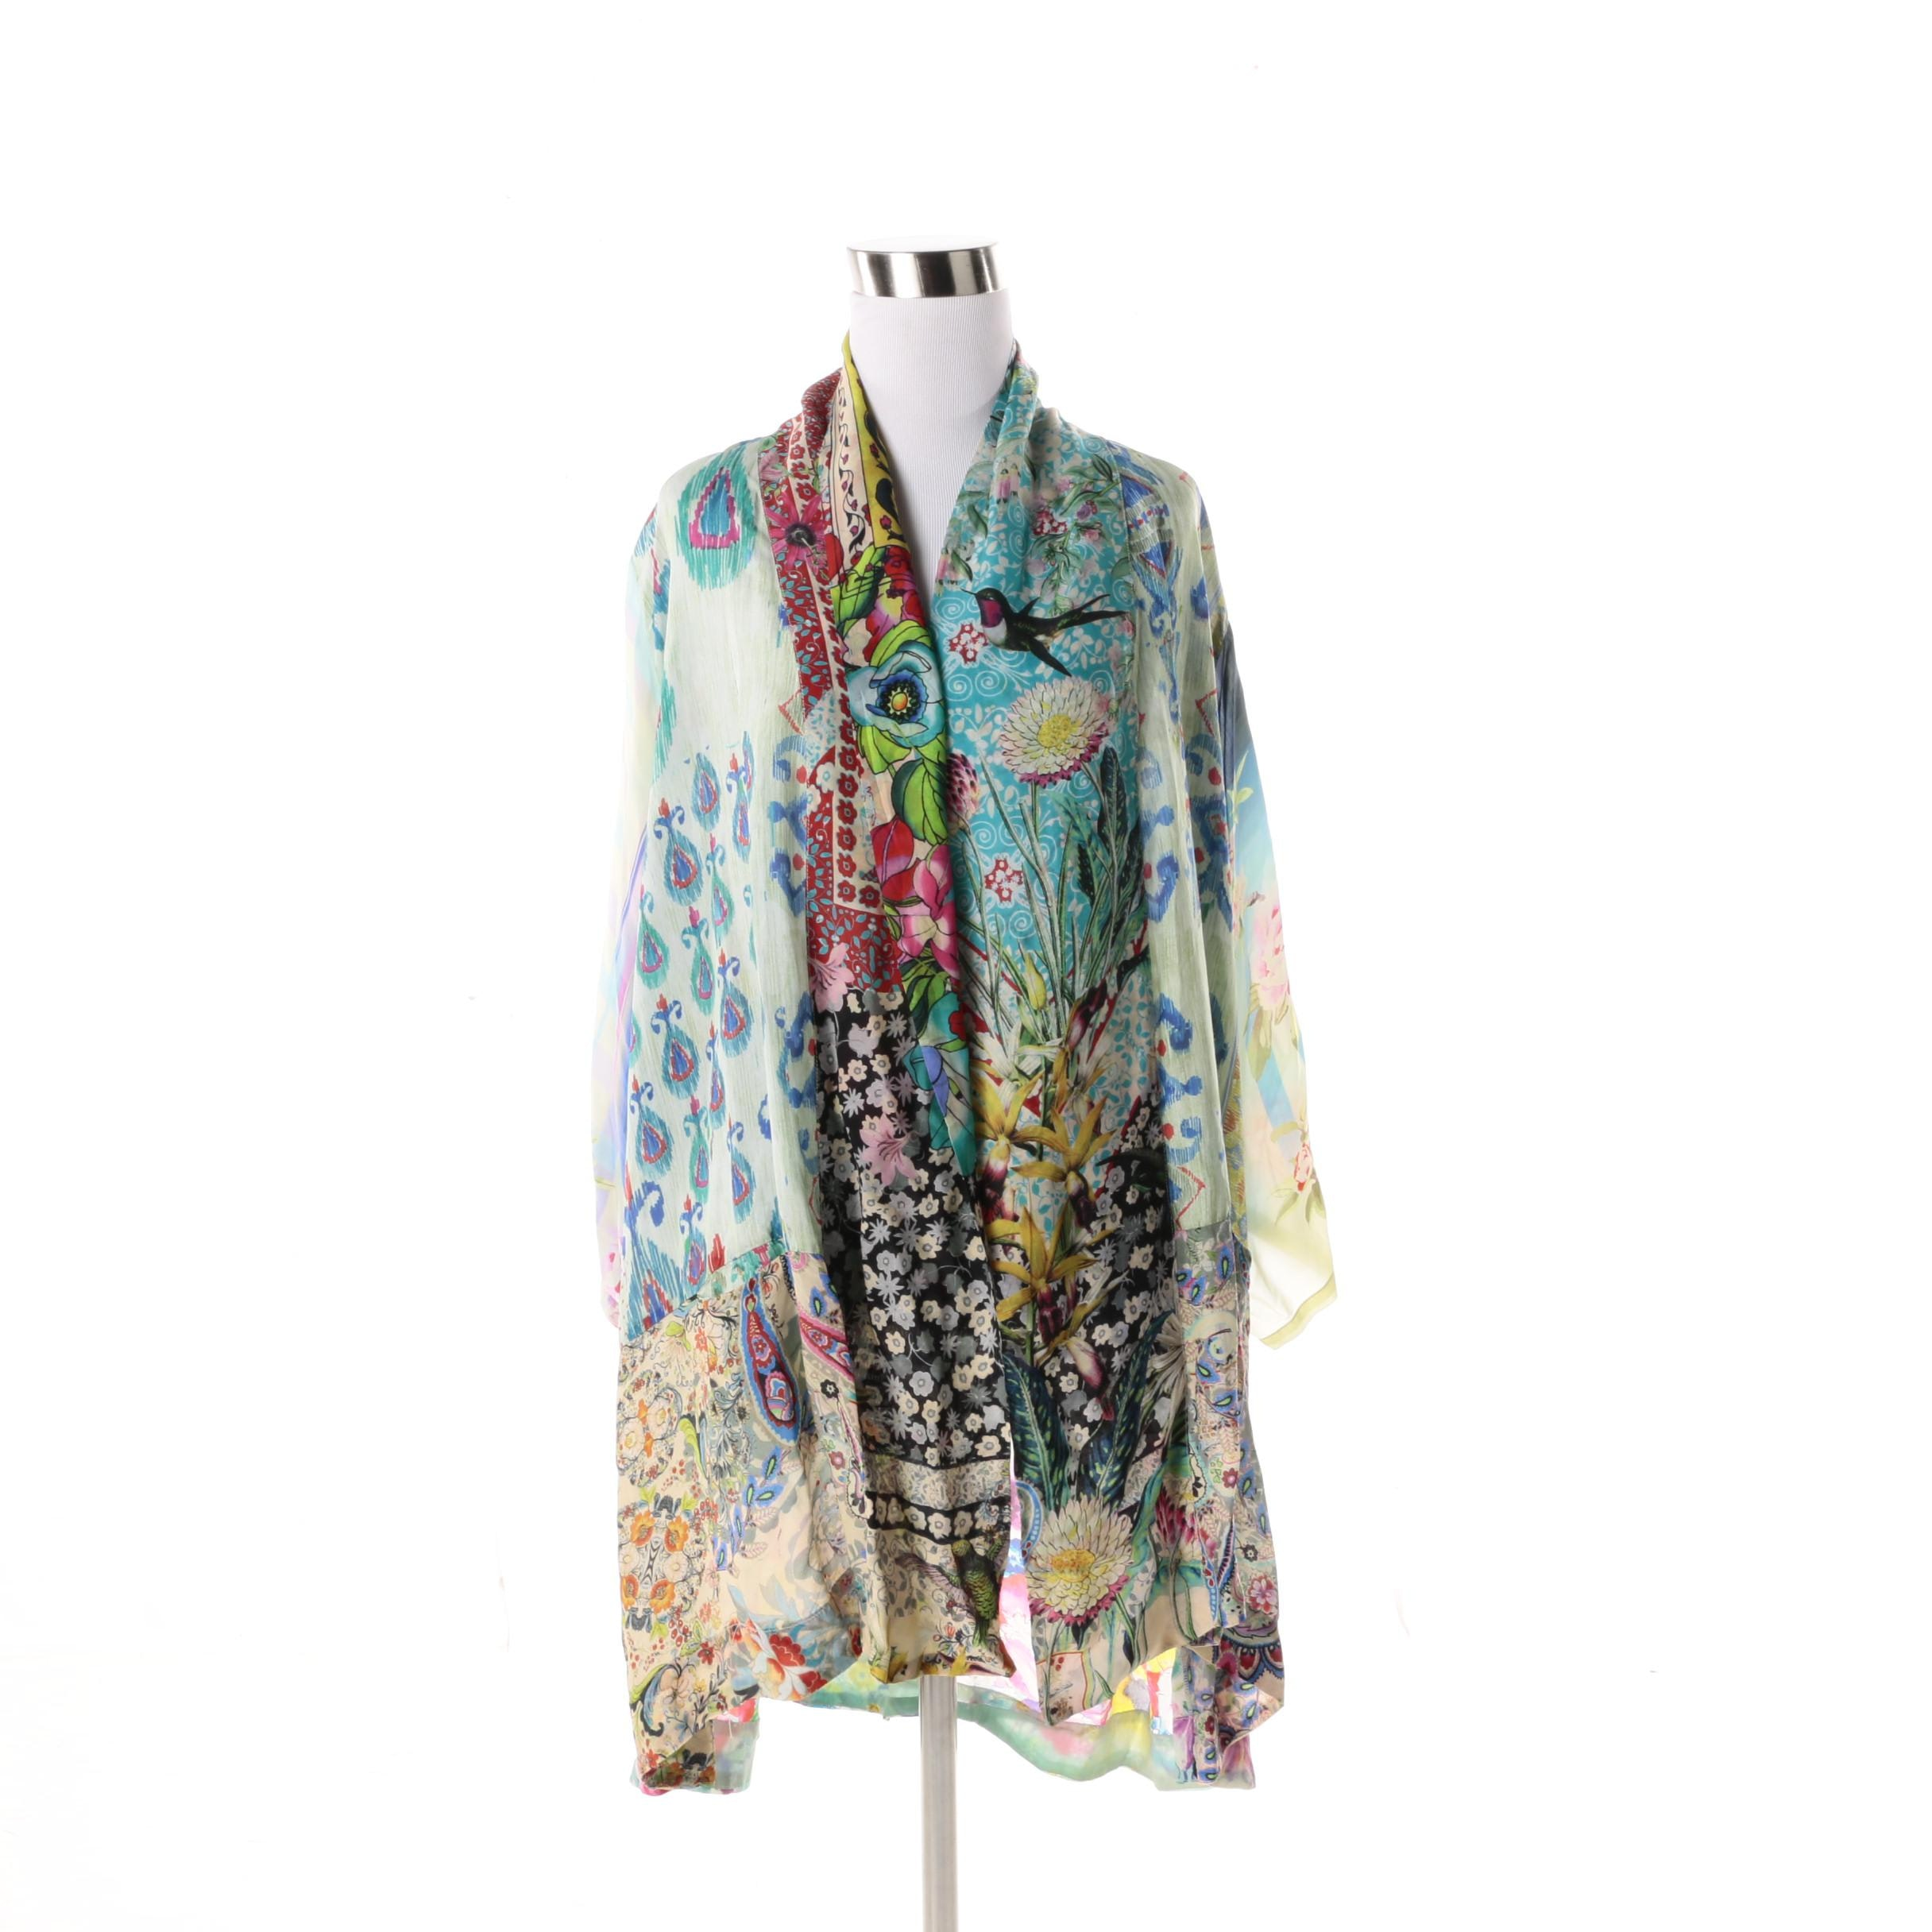 Women's Johnny Was Silk Chiffon Jacket